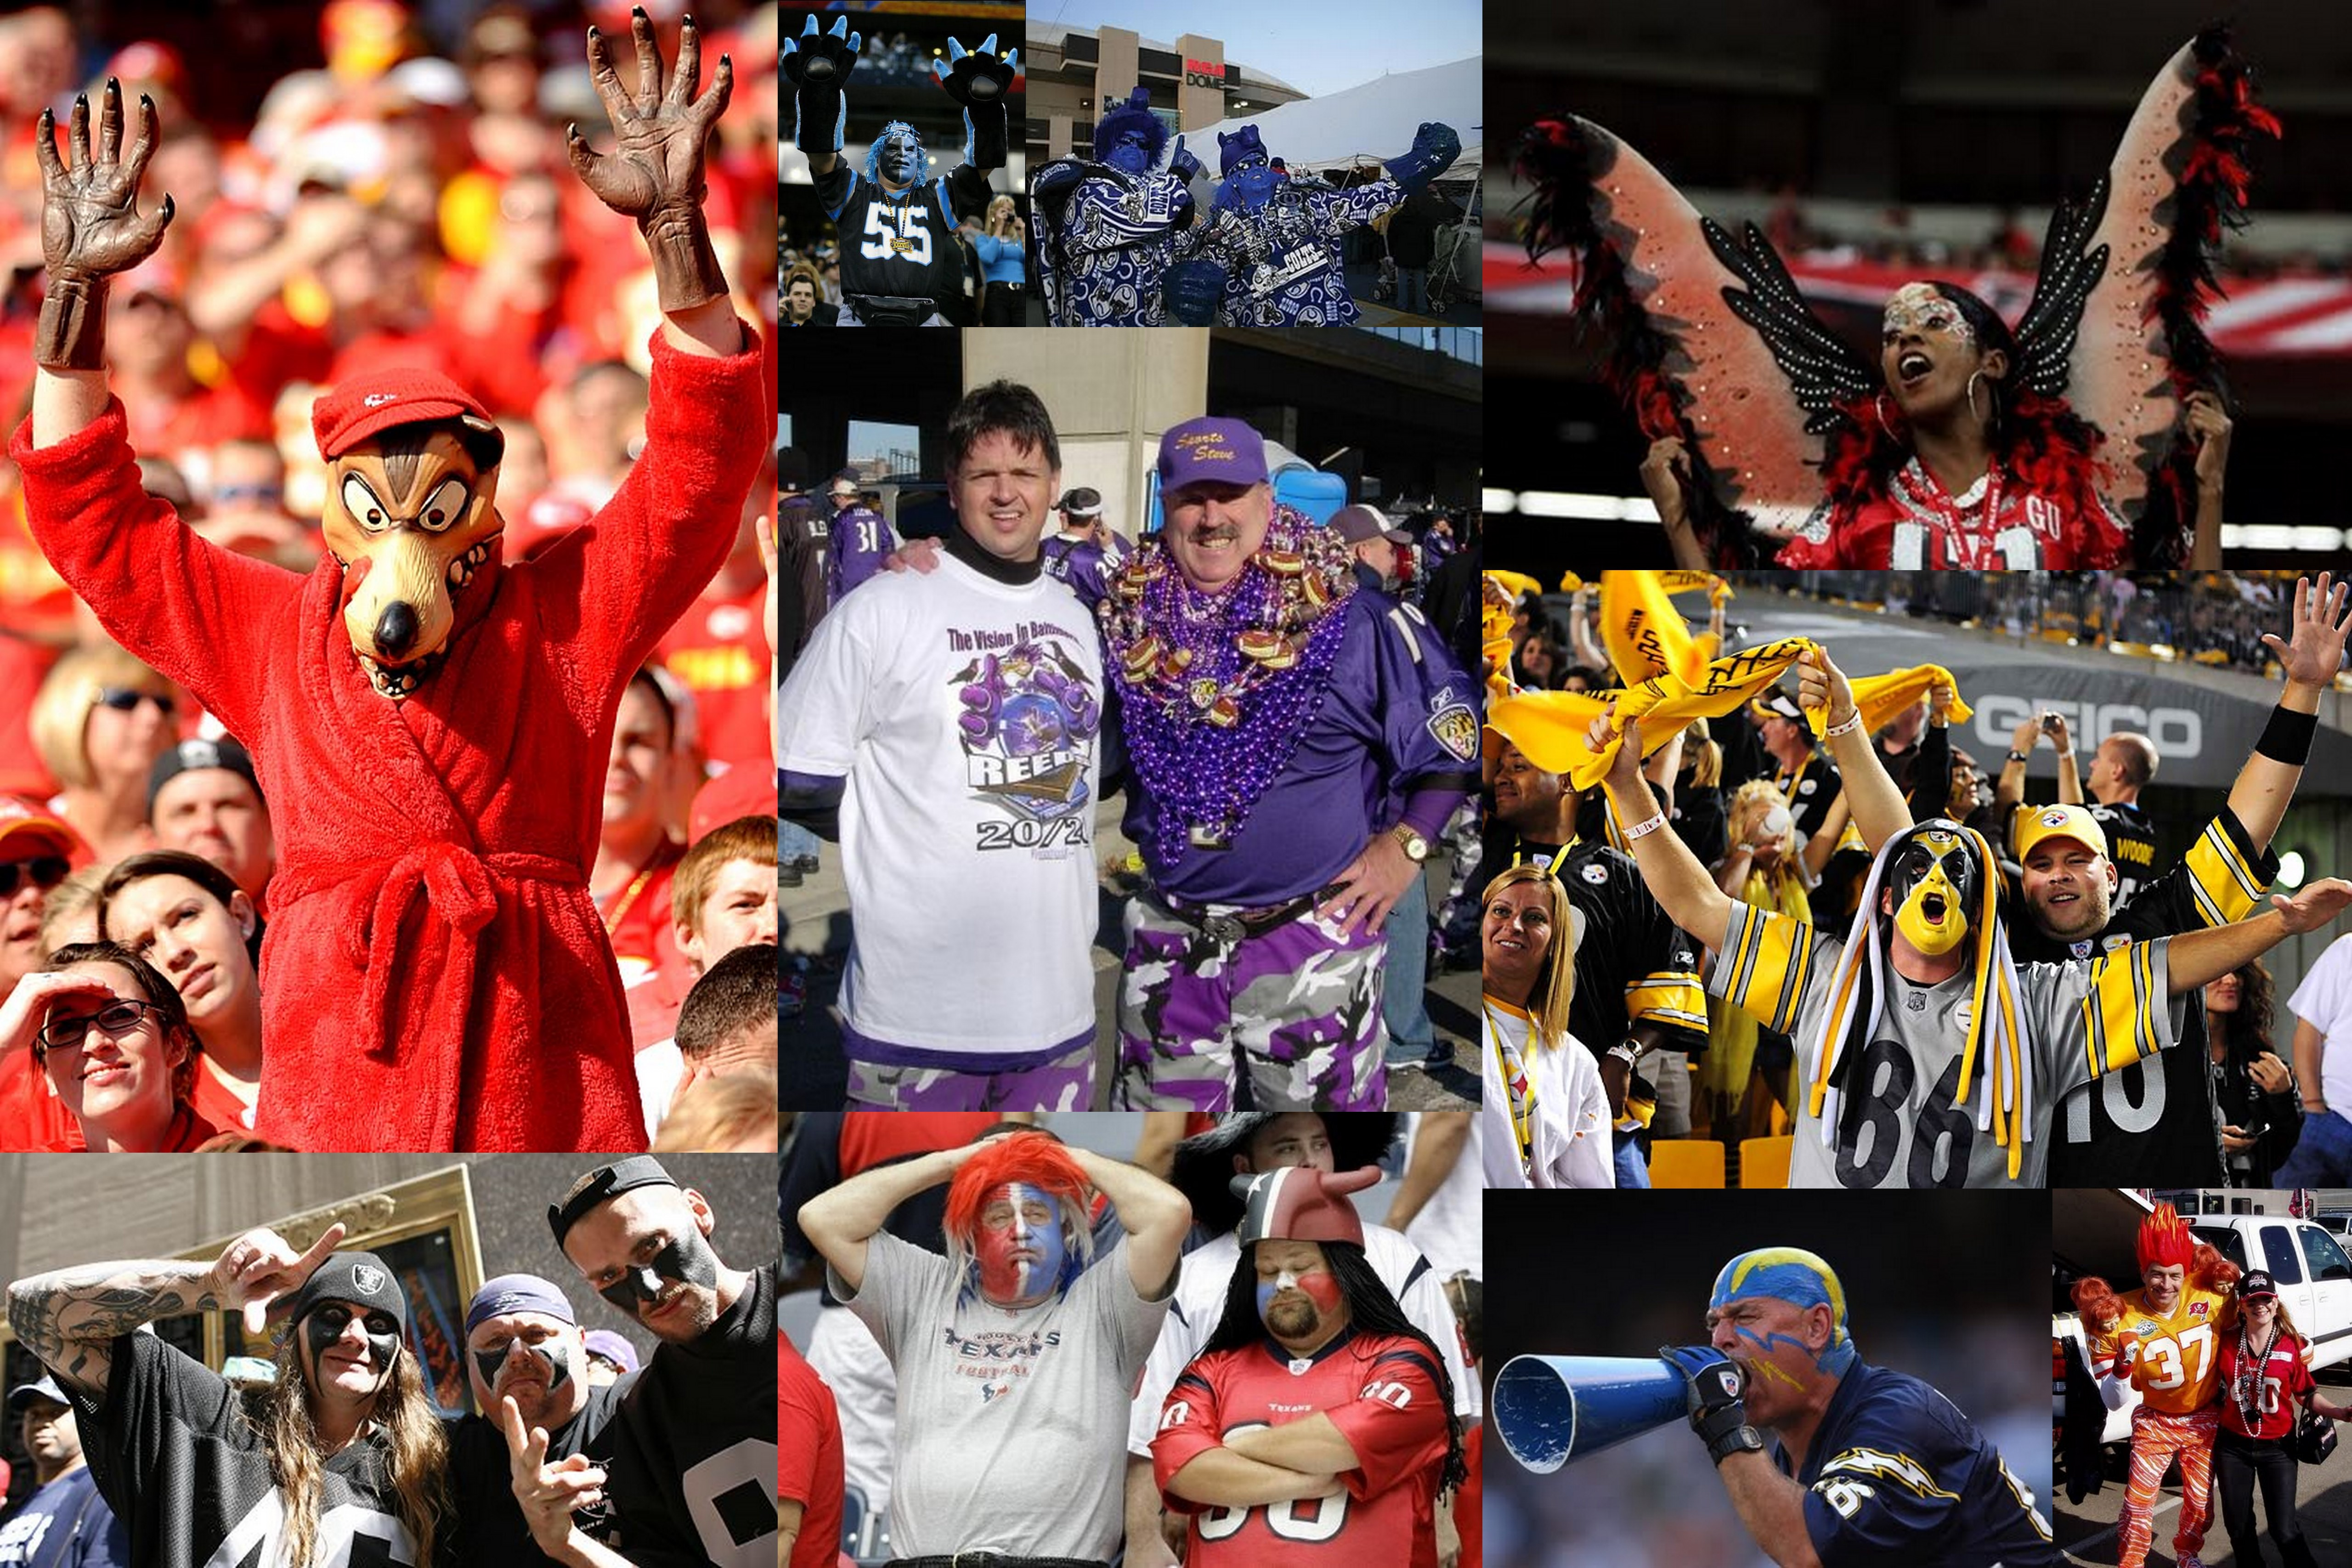 Nfl Power Rankings Top 25 Nfl Halloween Fashions Around The